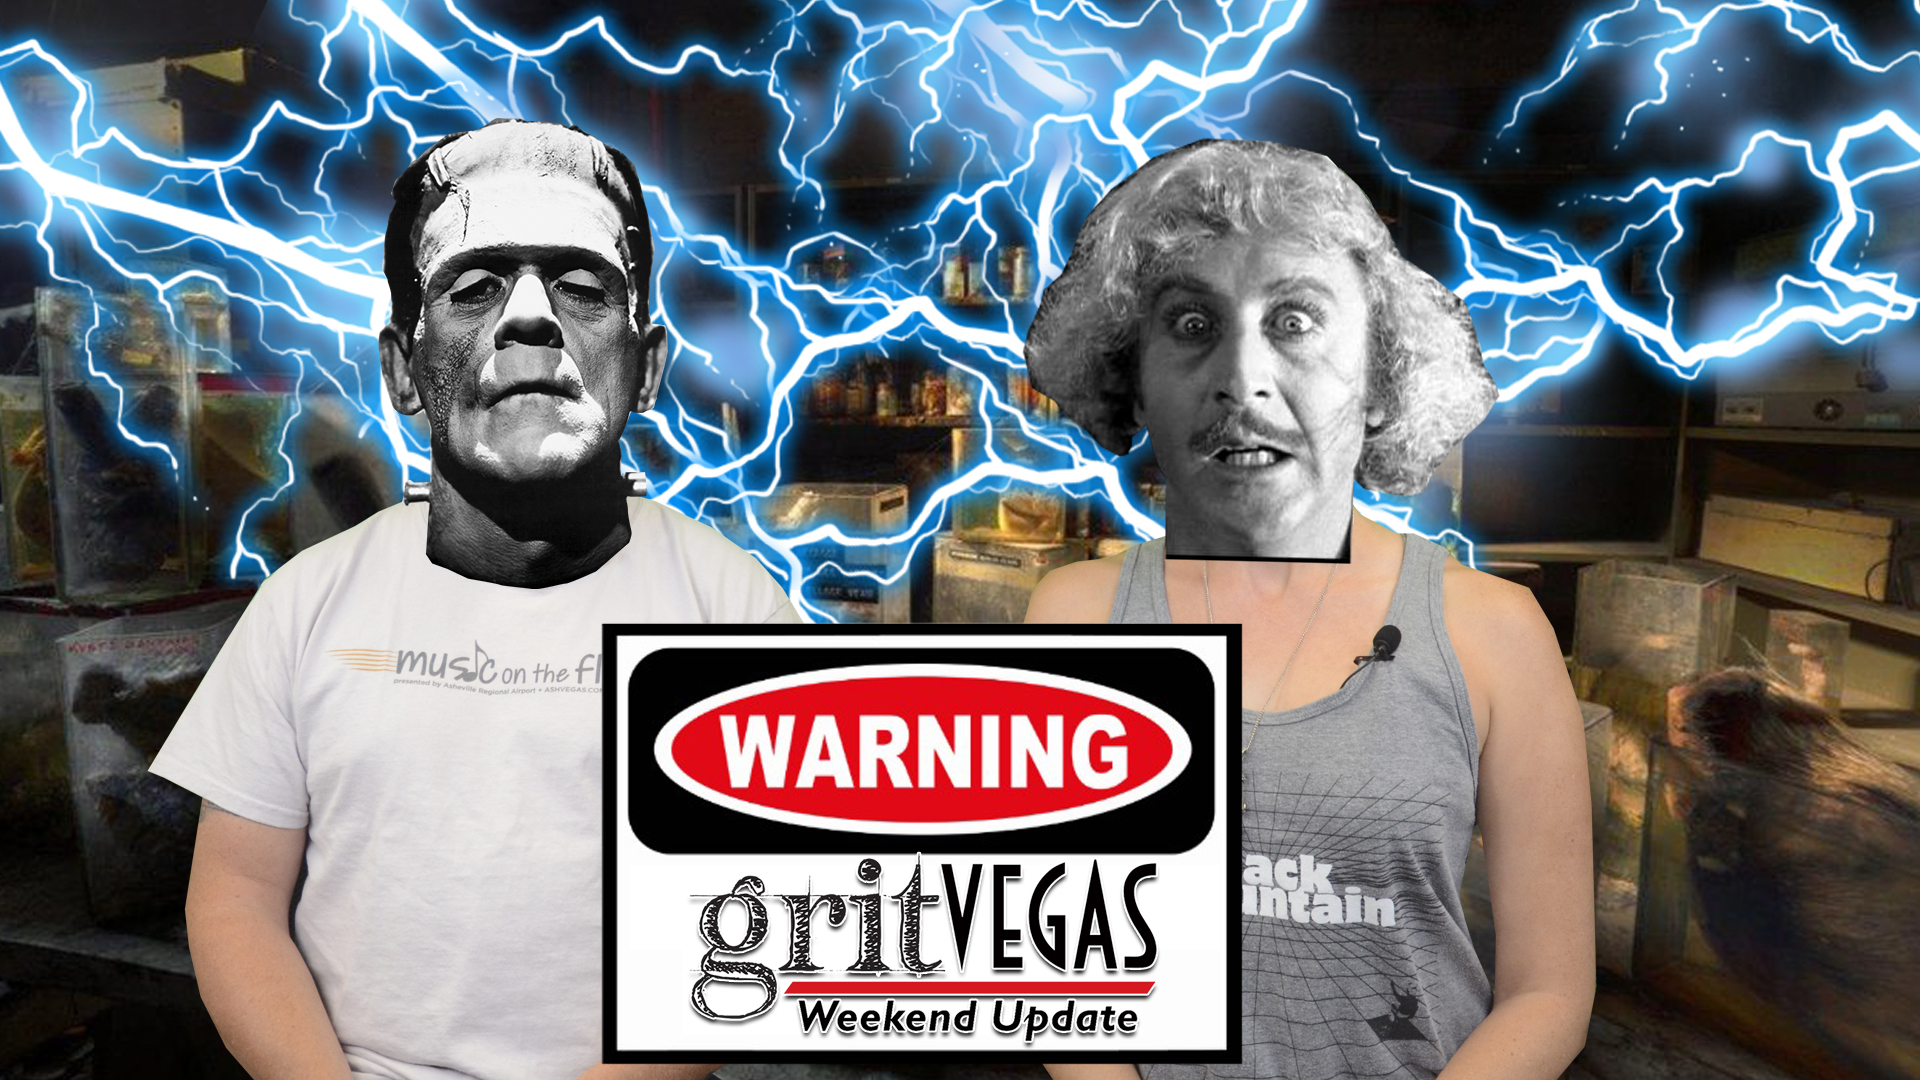 The GritVegas Weekend Update – 9/1/16